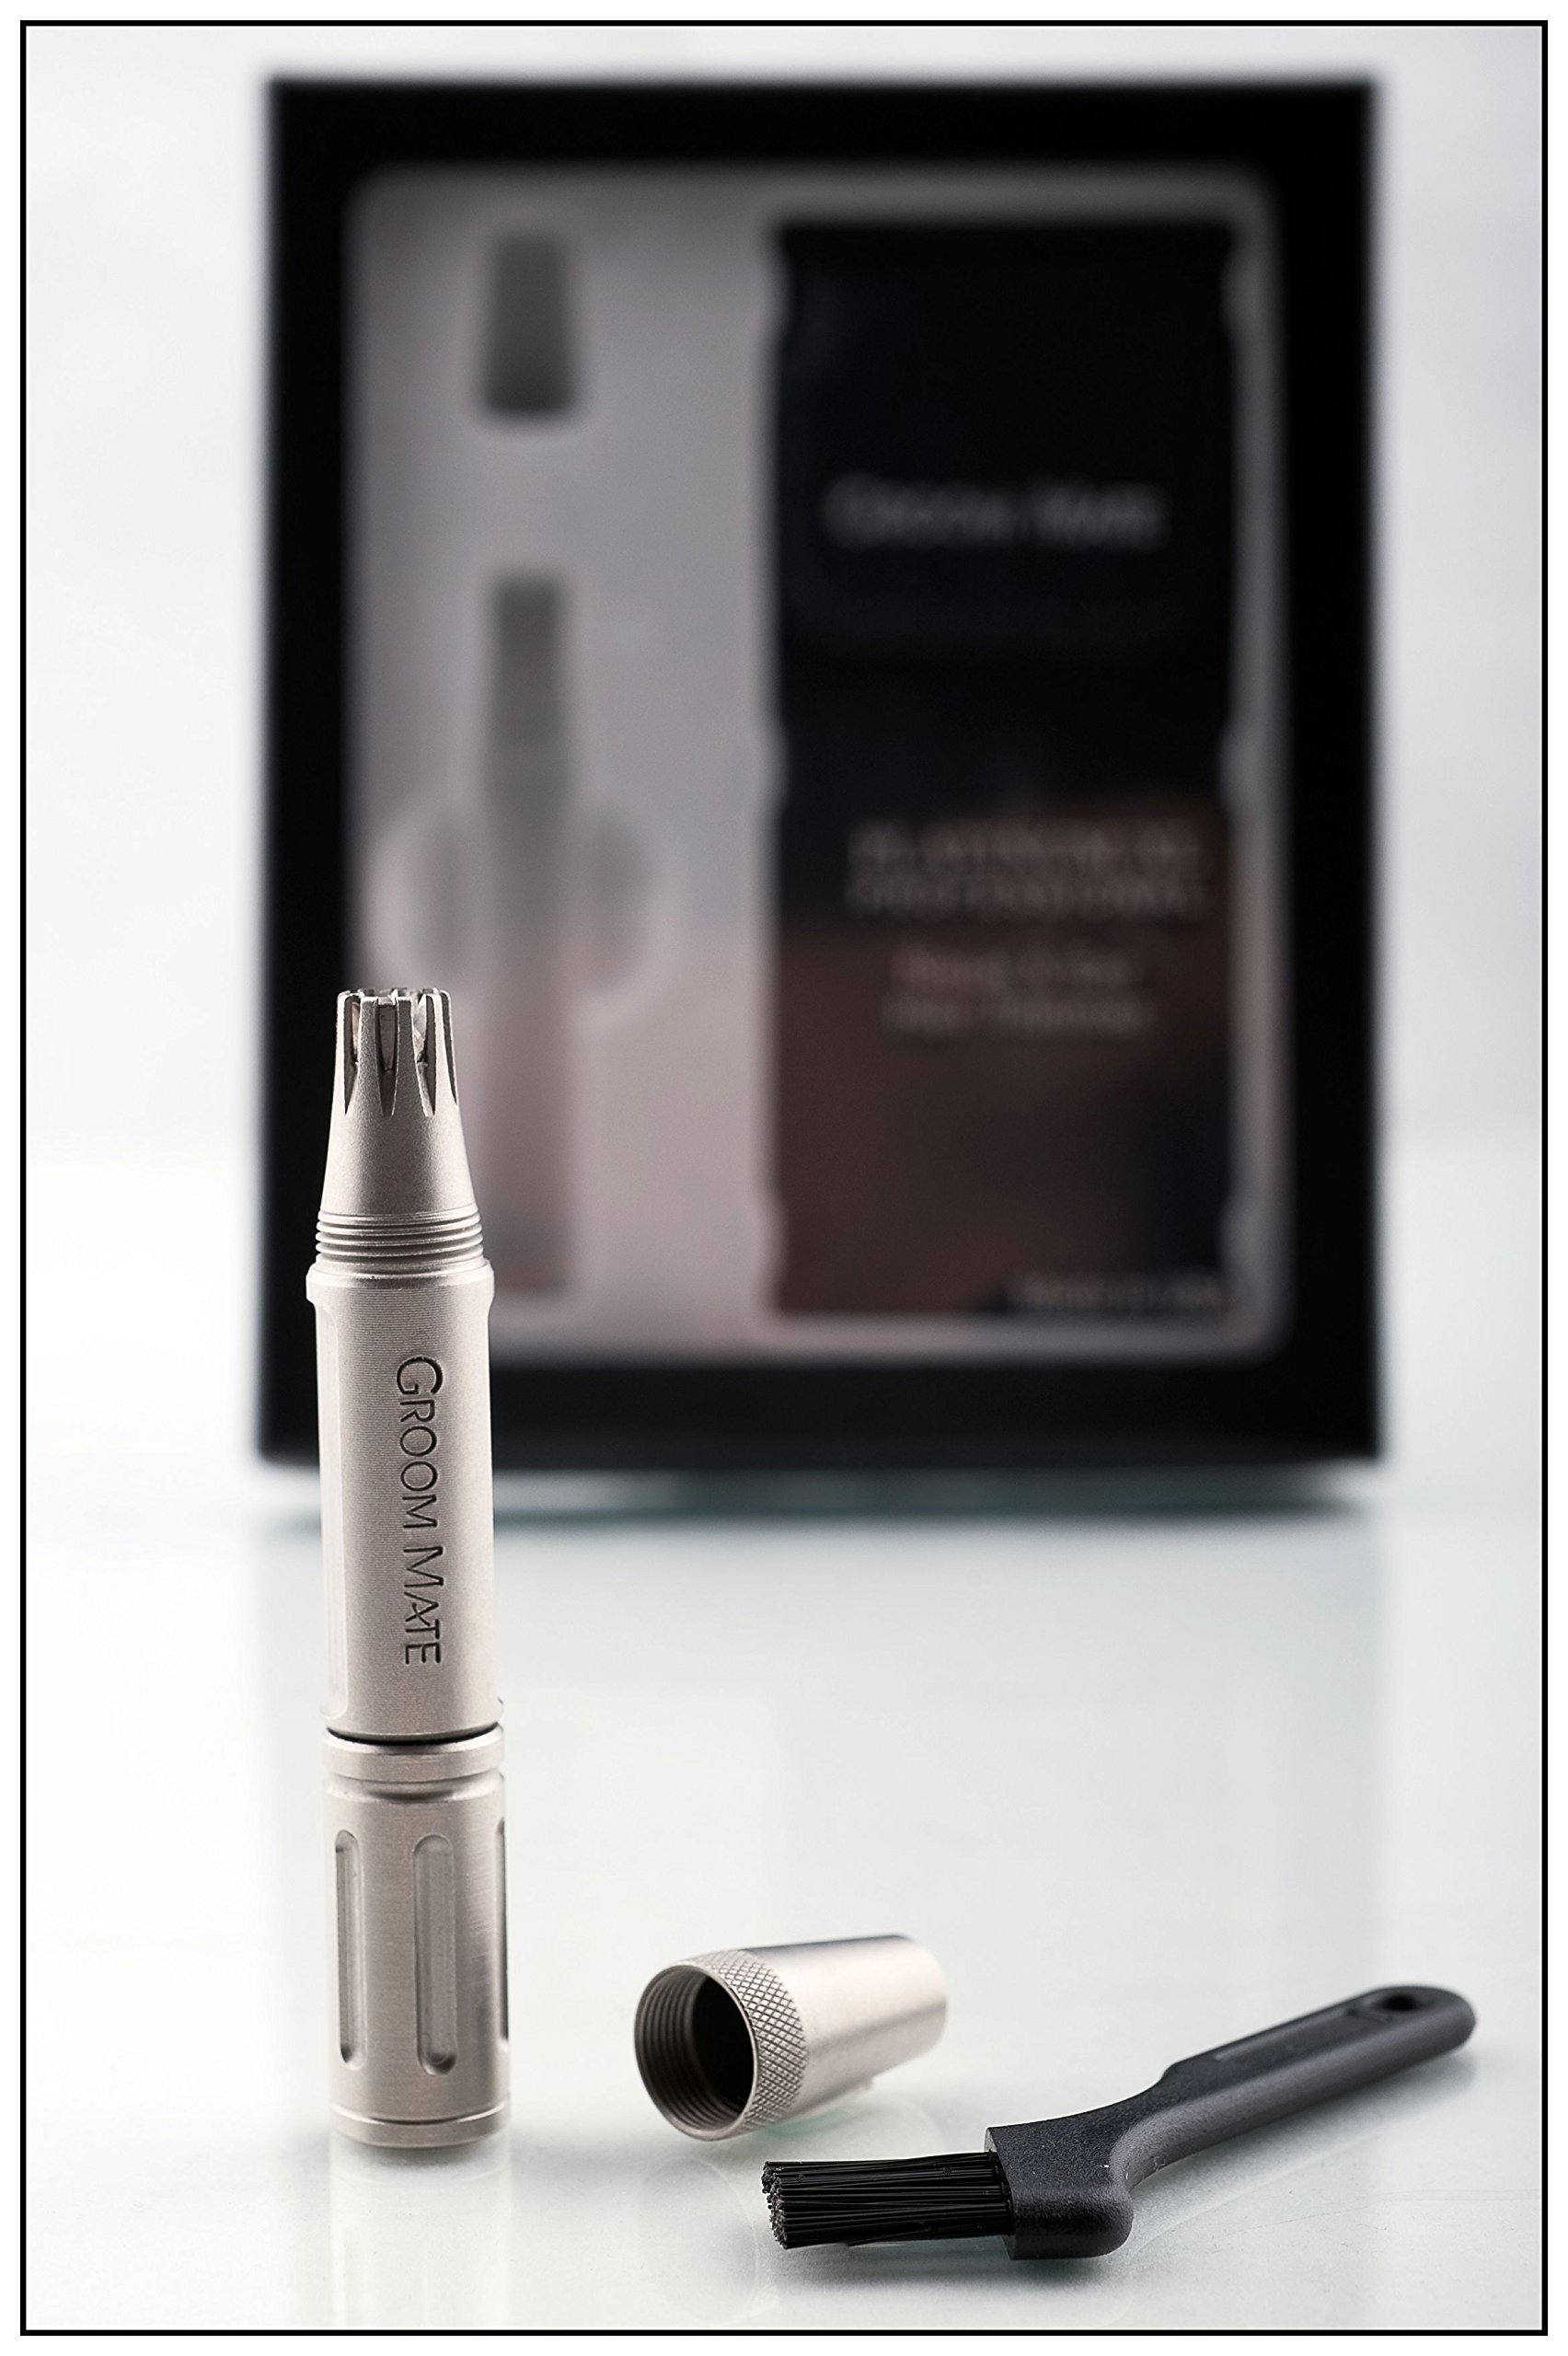 Groom Mate Platinum XL Professional Nasal/Nose & Ear Hair Trimmer w/Lifetime Warranty & Made in The USA